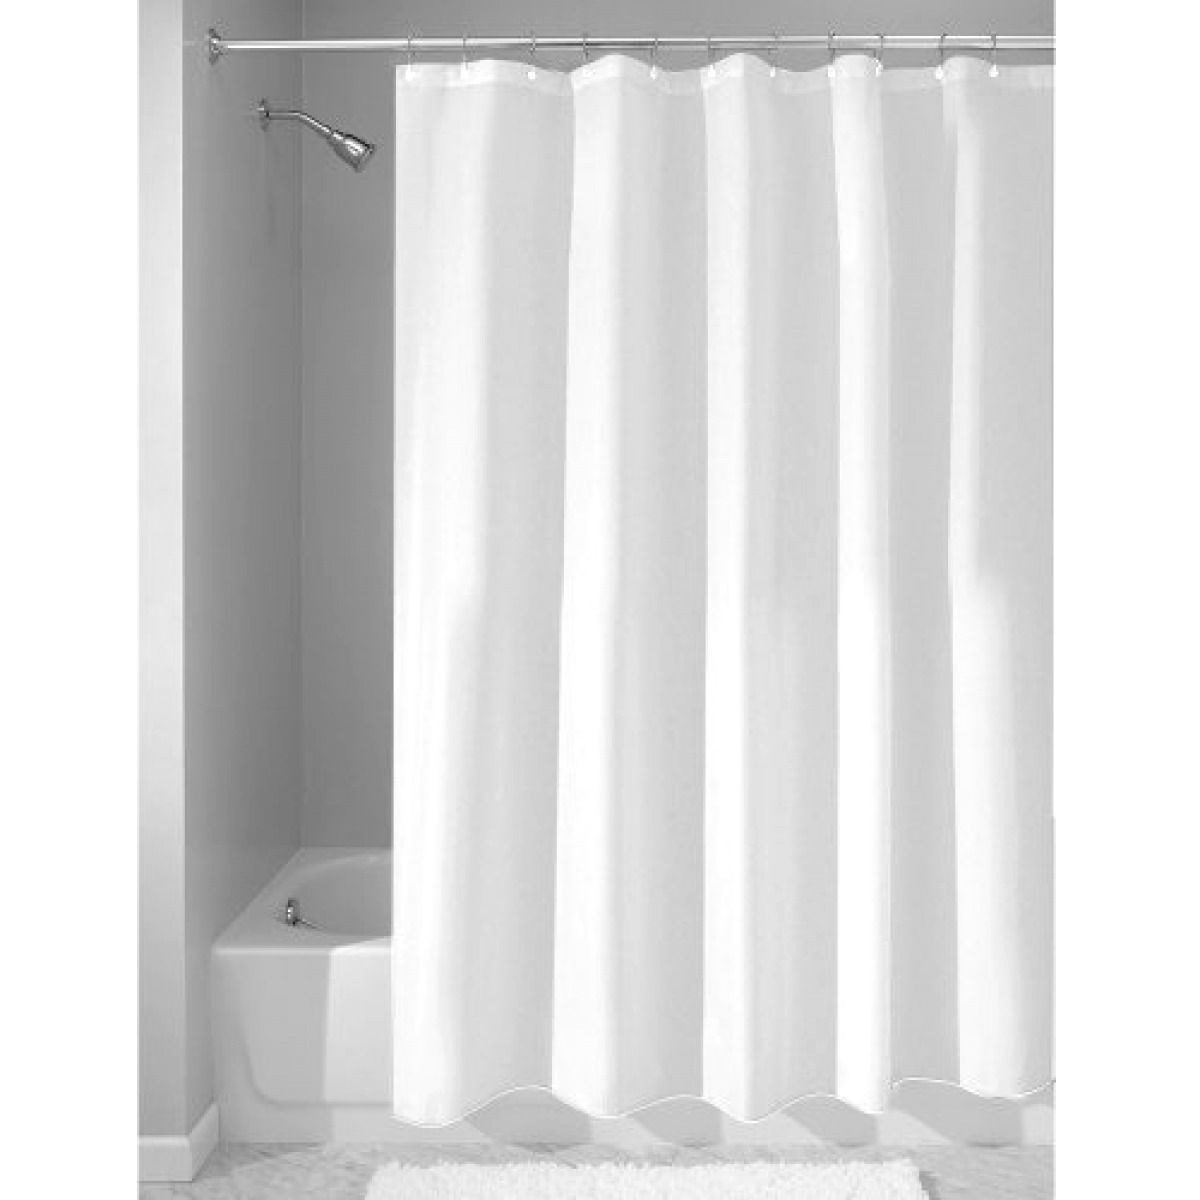 Shower curtain liner white waterrepellent mildewfree fabric x